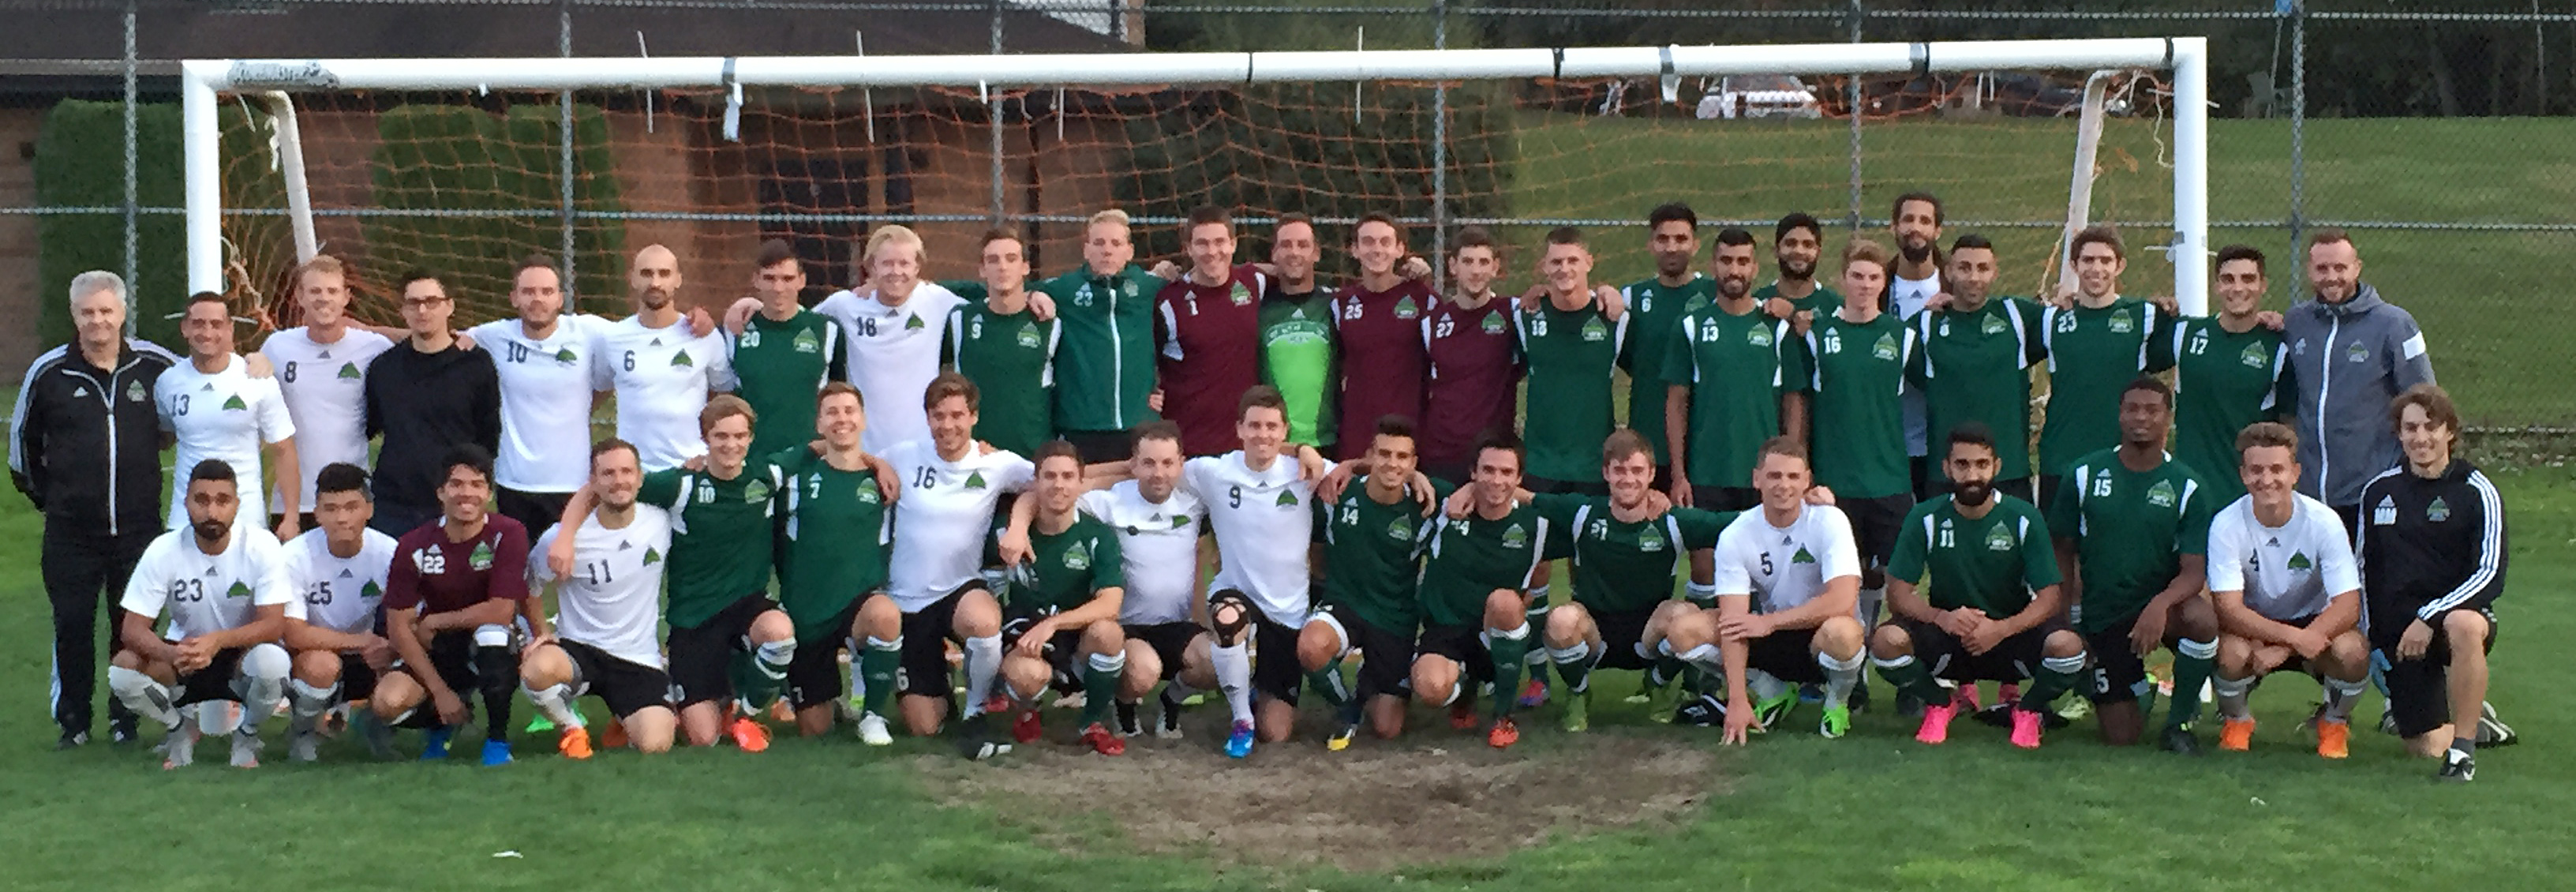 Cascades past and present come together for men's soccer ...